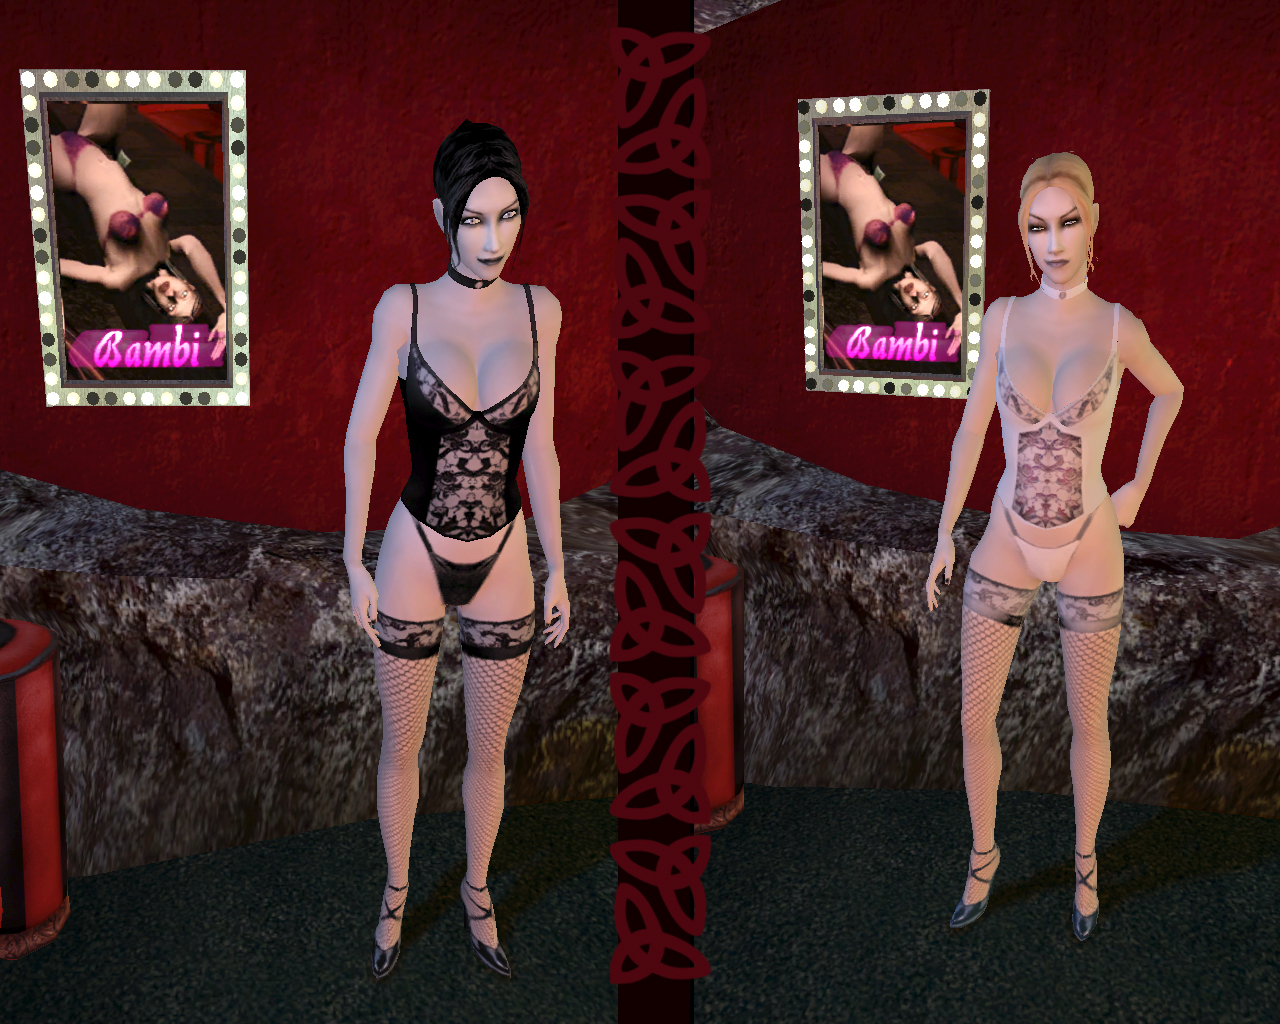 Vampire the masquerade bloodlines nude skins sexy images